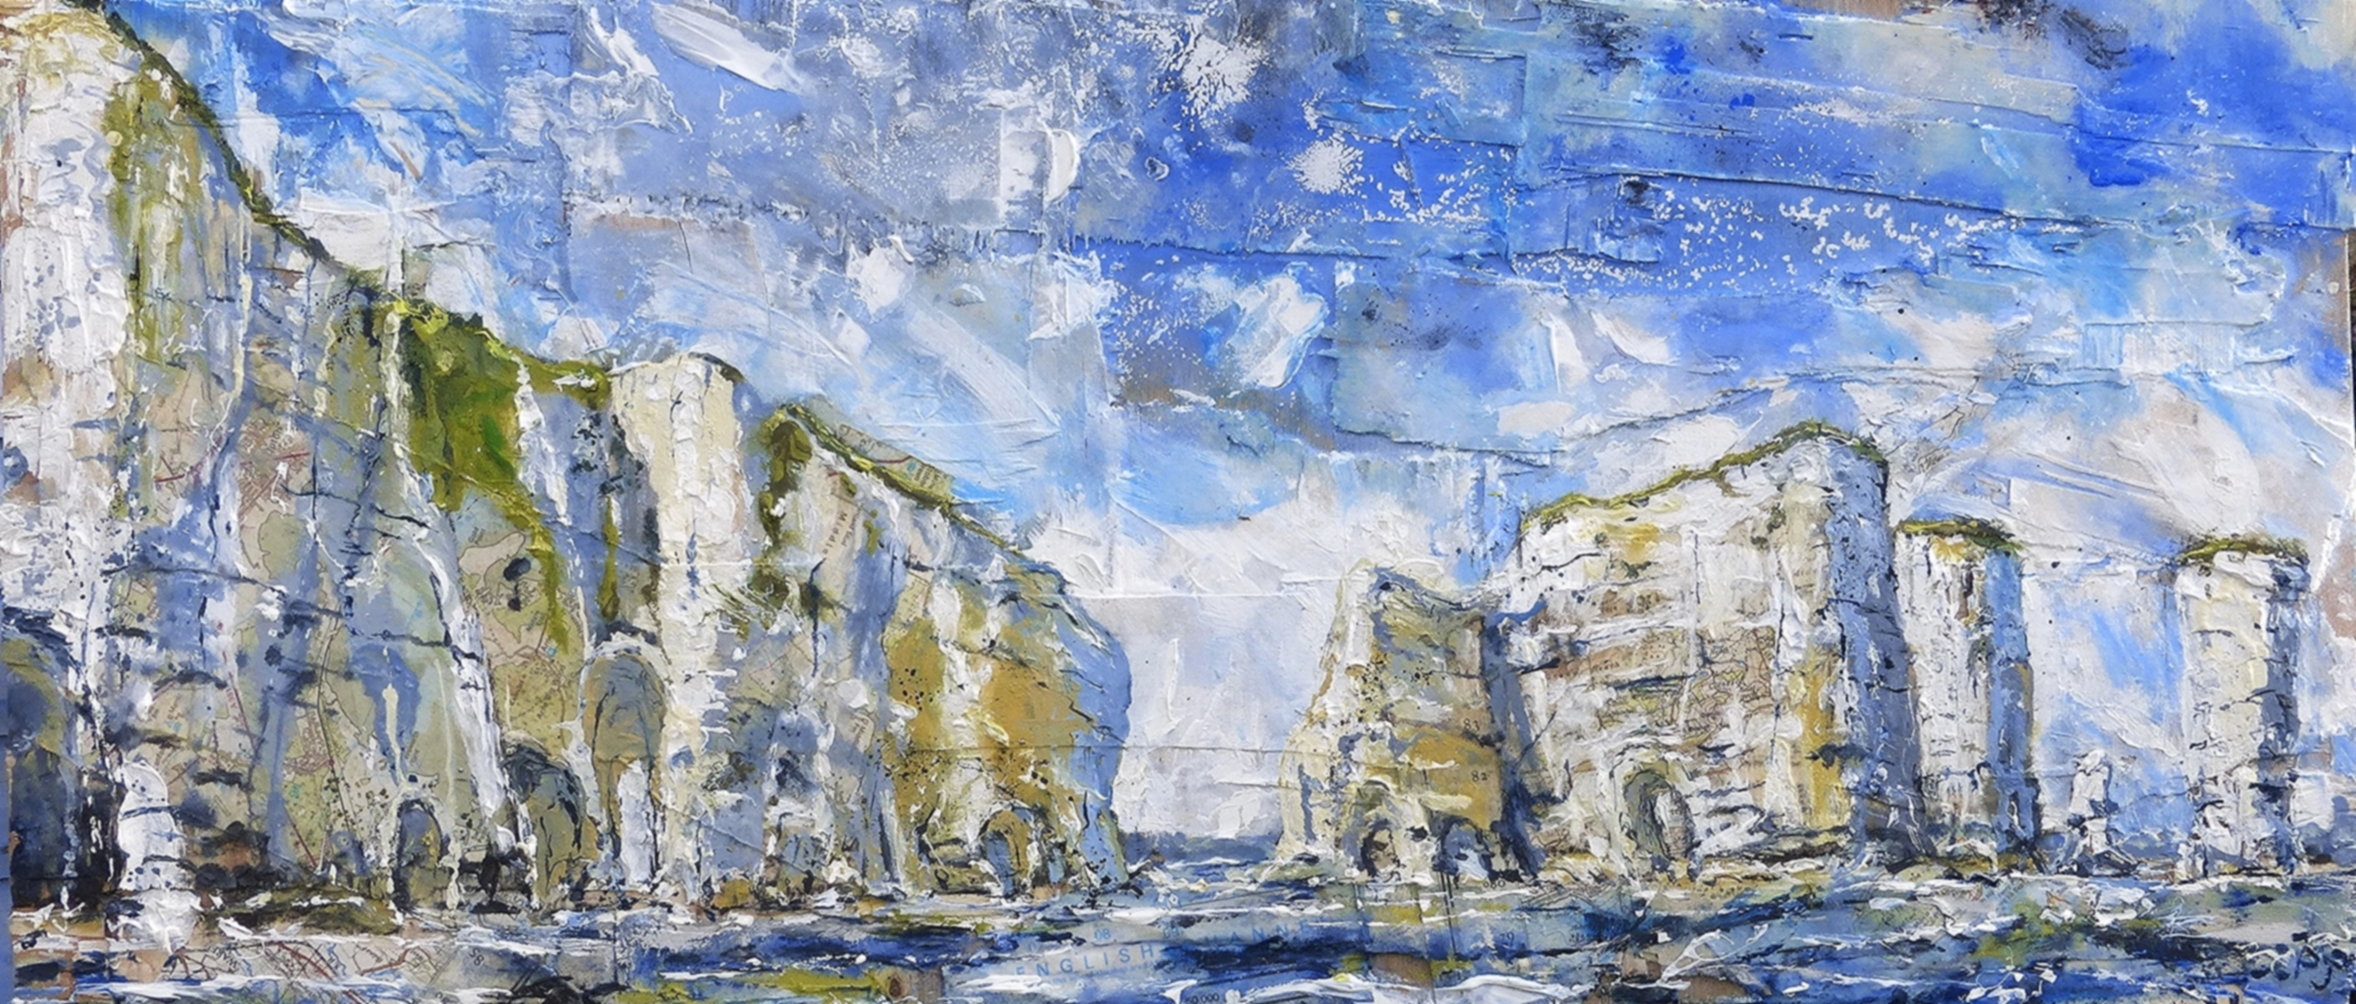 St. Lucas Leap and Old Harry Rock, Purbeck Coast, Dorset. Oil, acrylic and collage on wood.